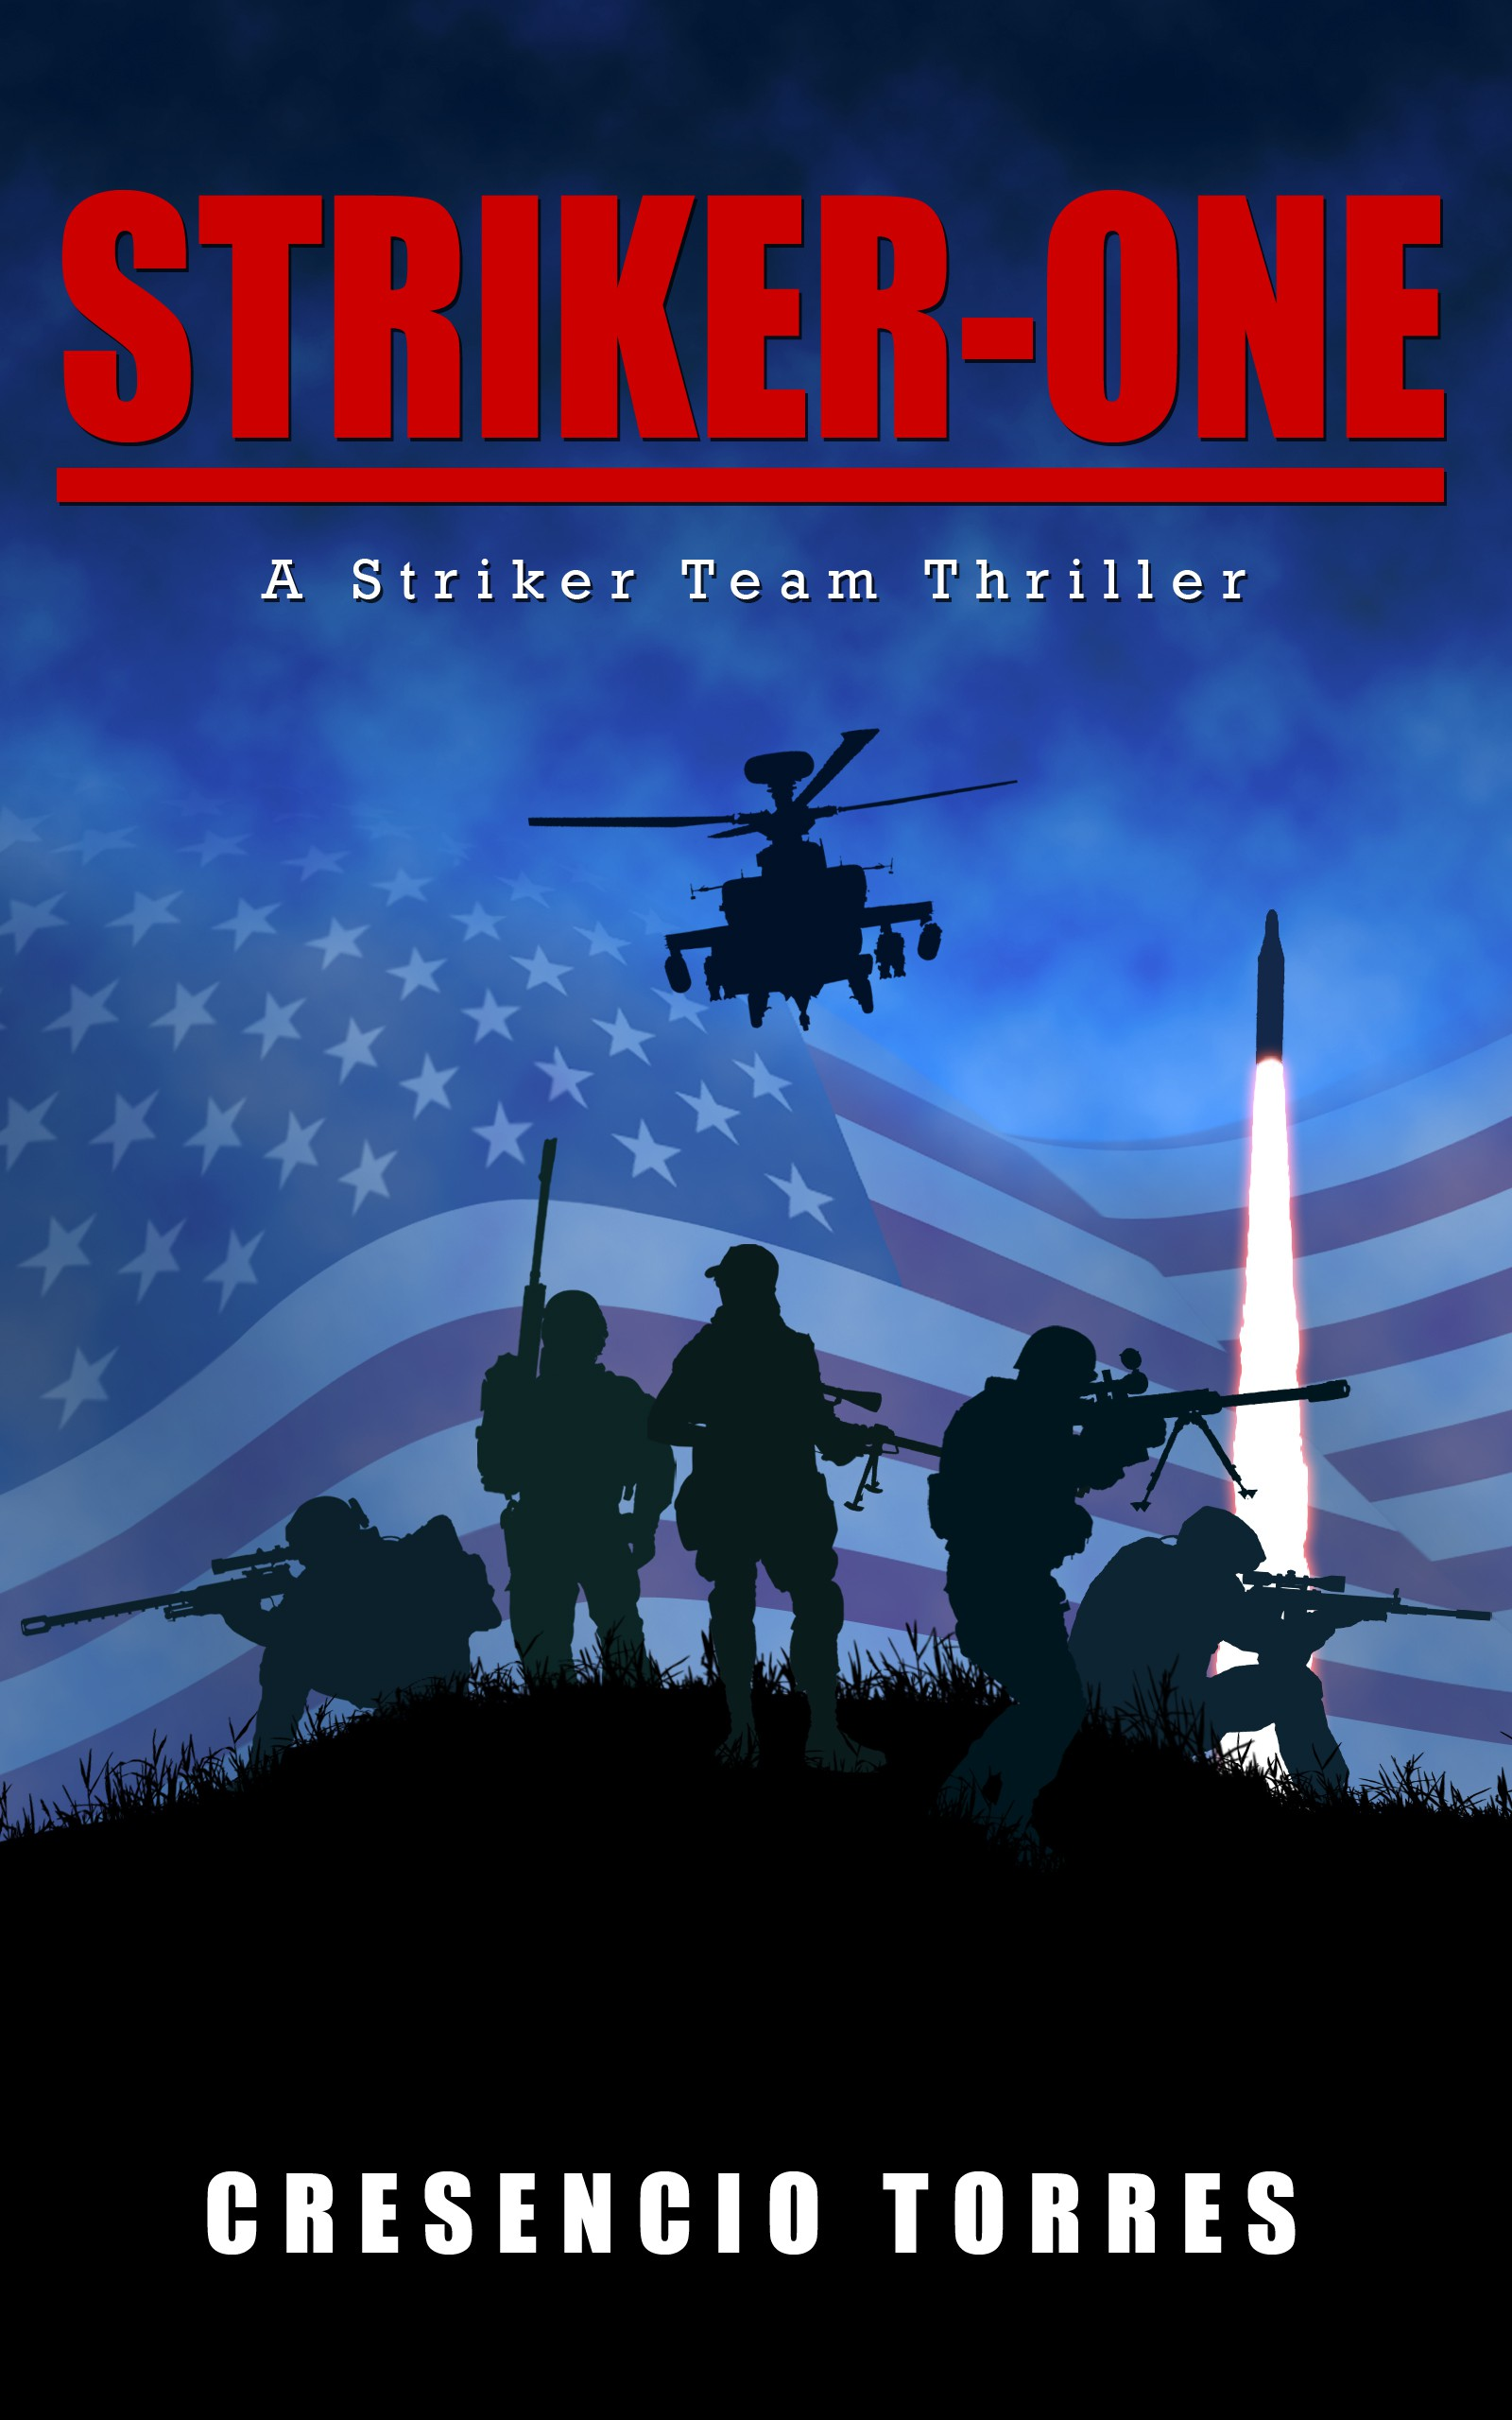 Design a compelling cover for a military action thriller that will capture attention.